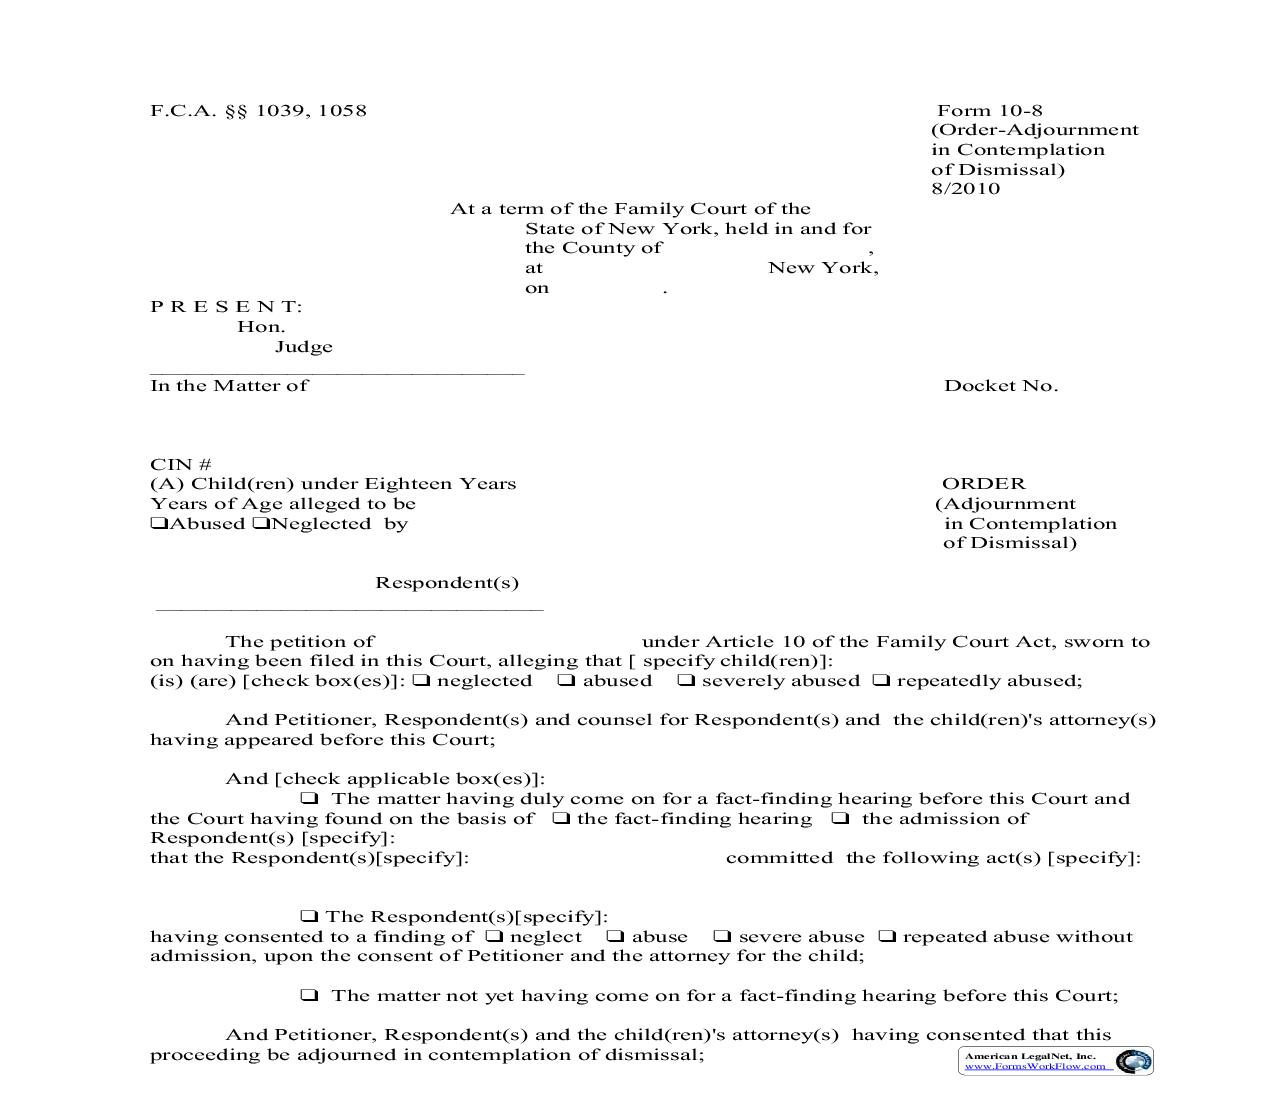 Order Adjournment In Contemplation Of Dismissal {10-8} | Pdf Fpdf Doc Docx | New York